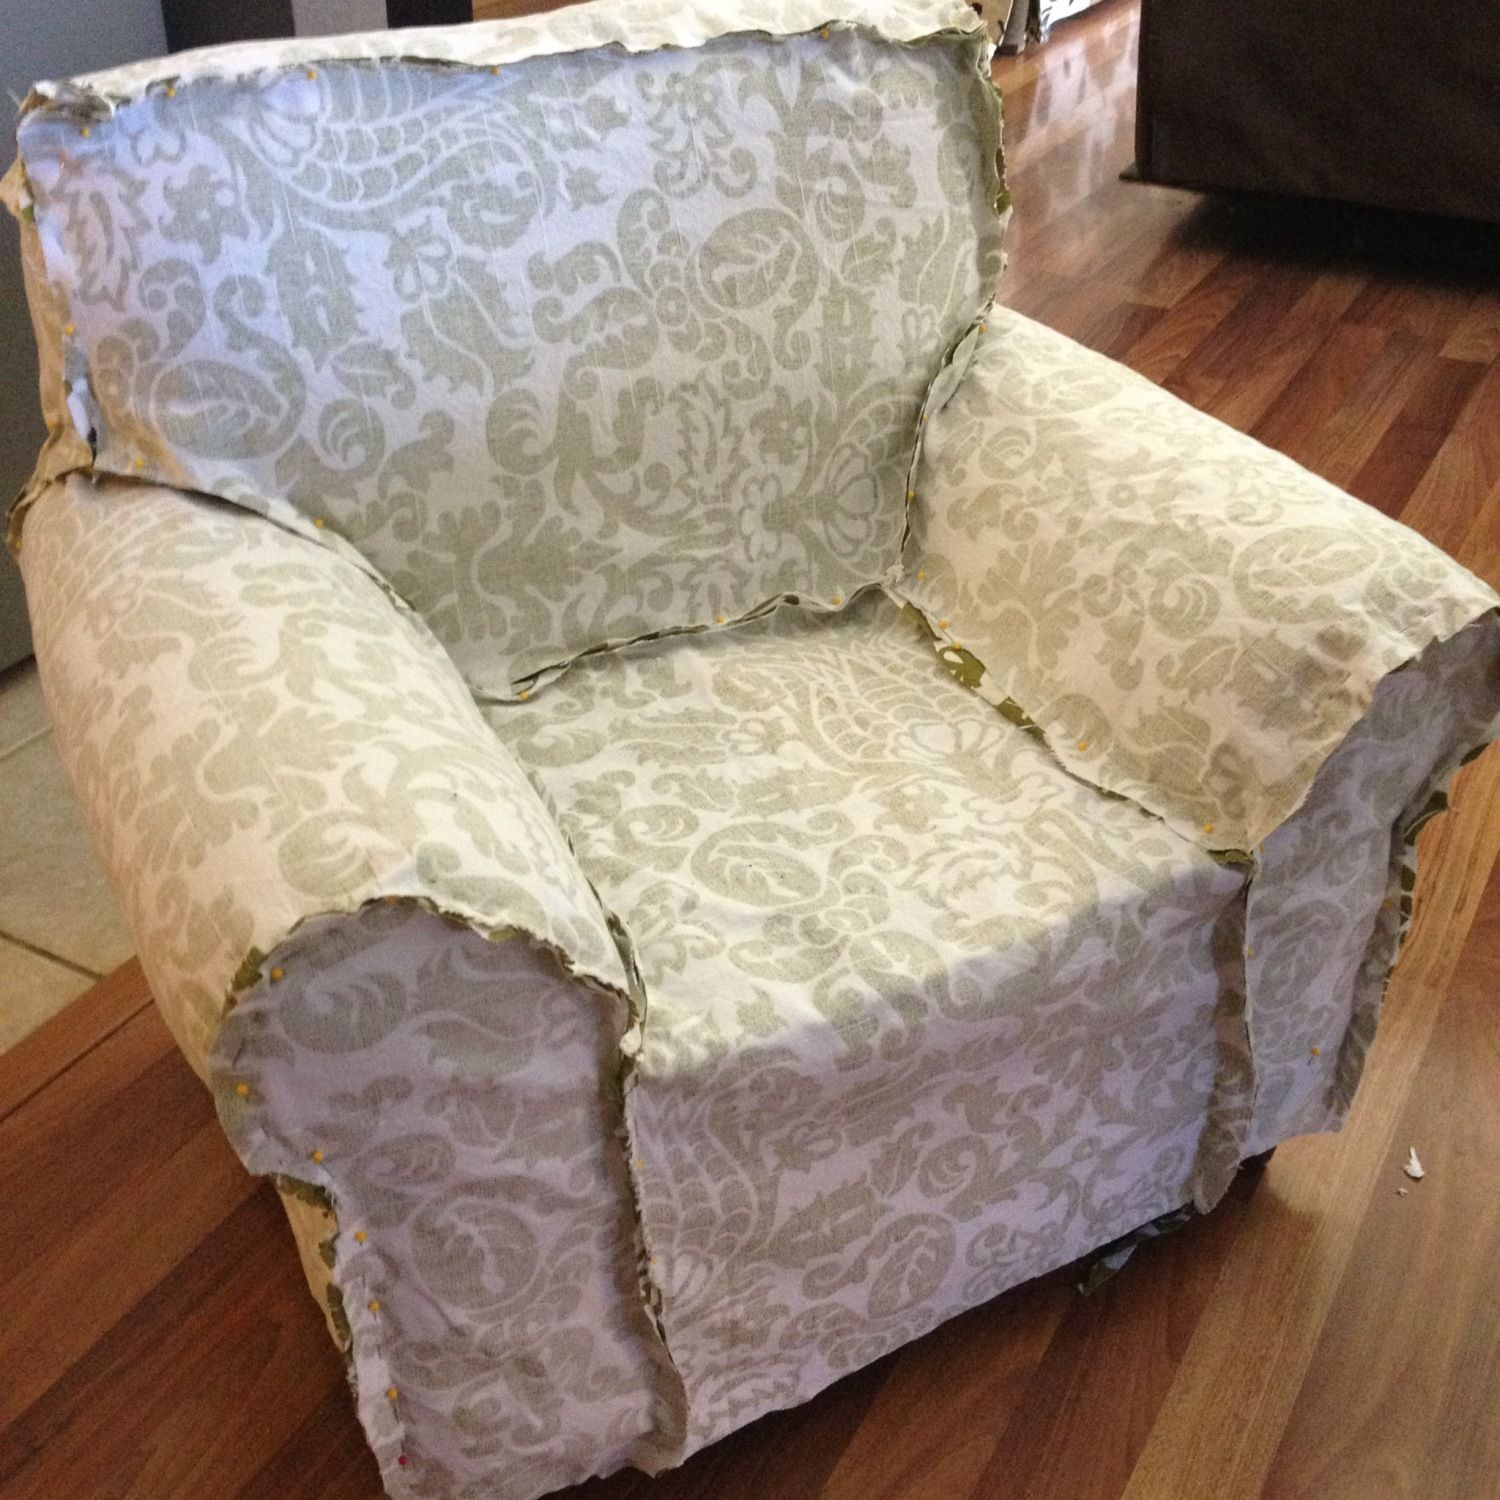 Sofa How To Make A Sofa Slipcover Wooden Floor Slipcover Brown Color With Floral A Good Choice For H Slipcovers For Chairs Furniture Upholstery Diy Couch Cover